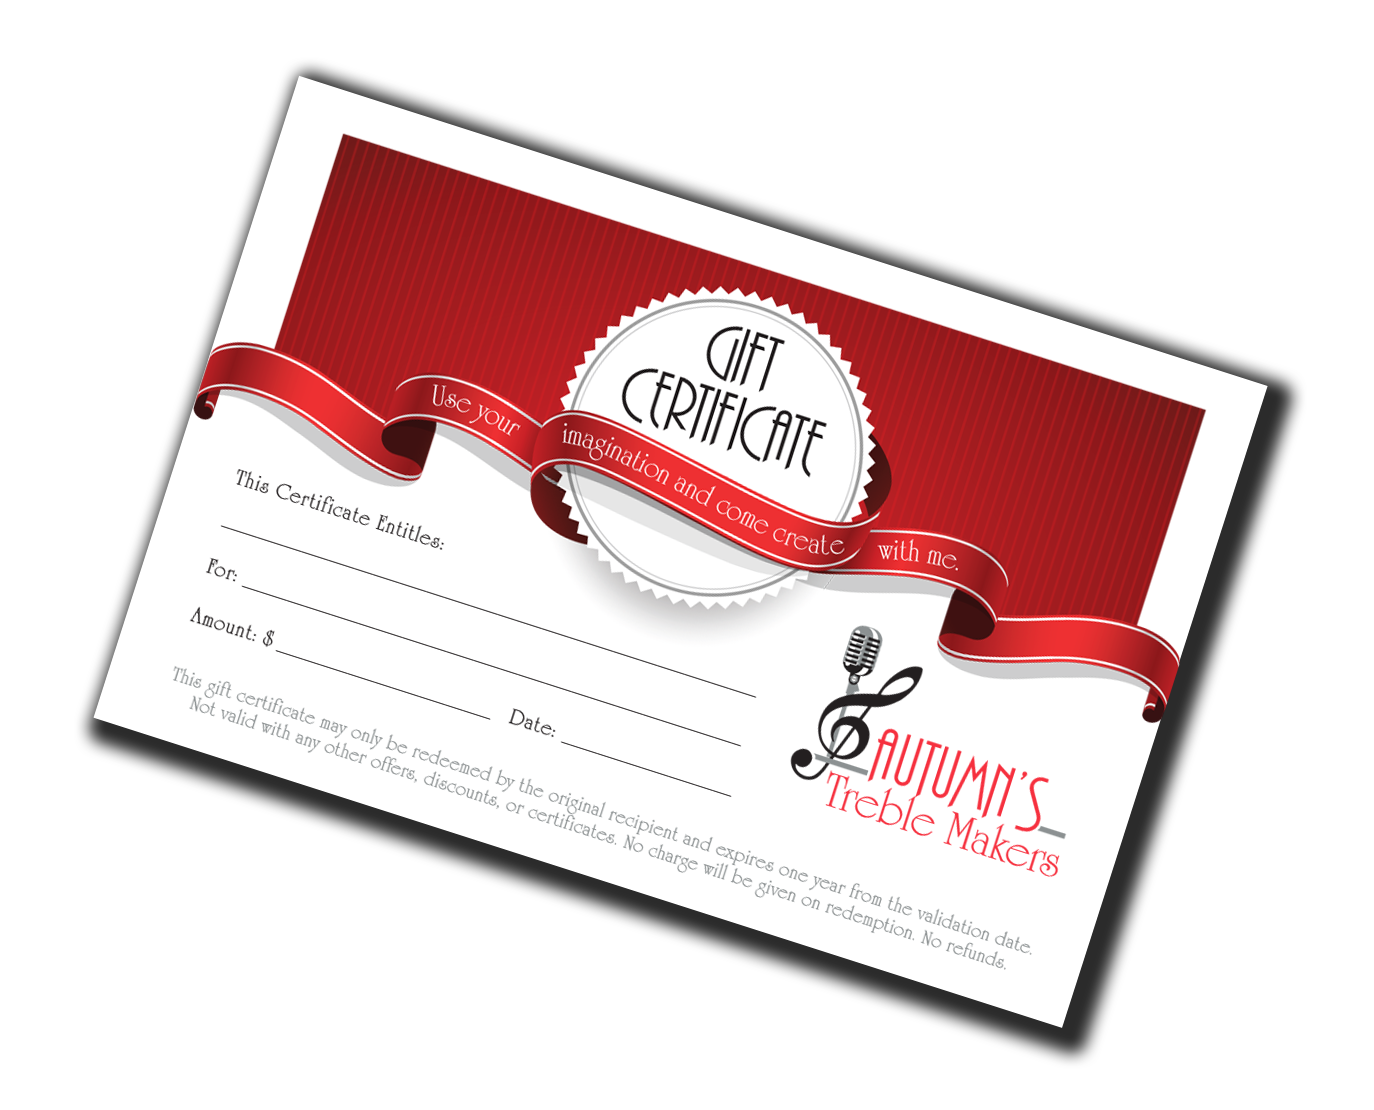 Image of a gift certificate.